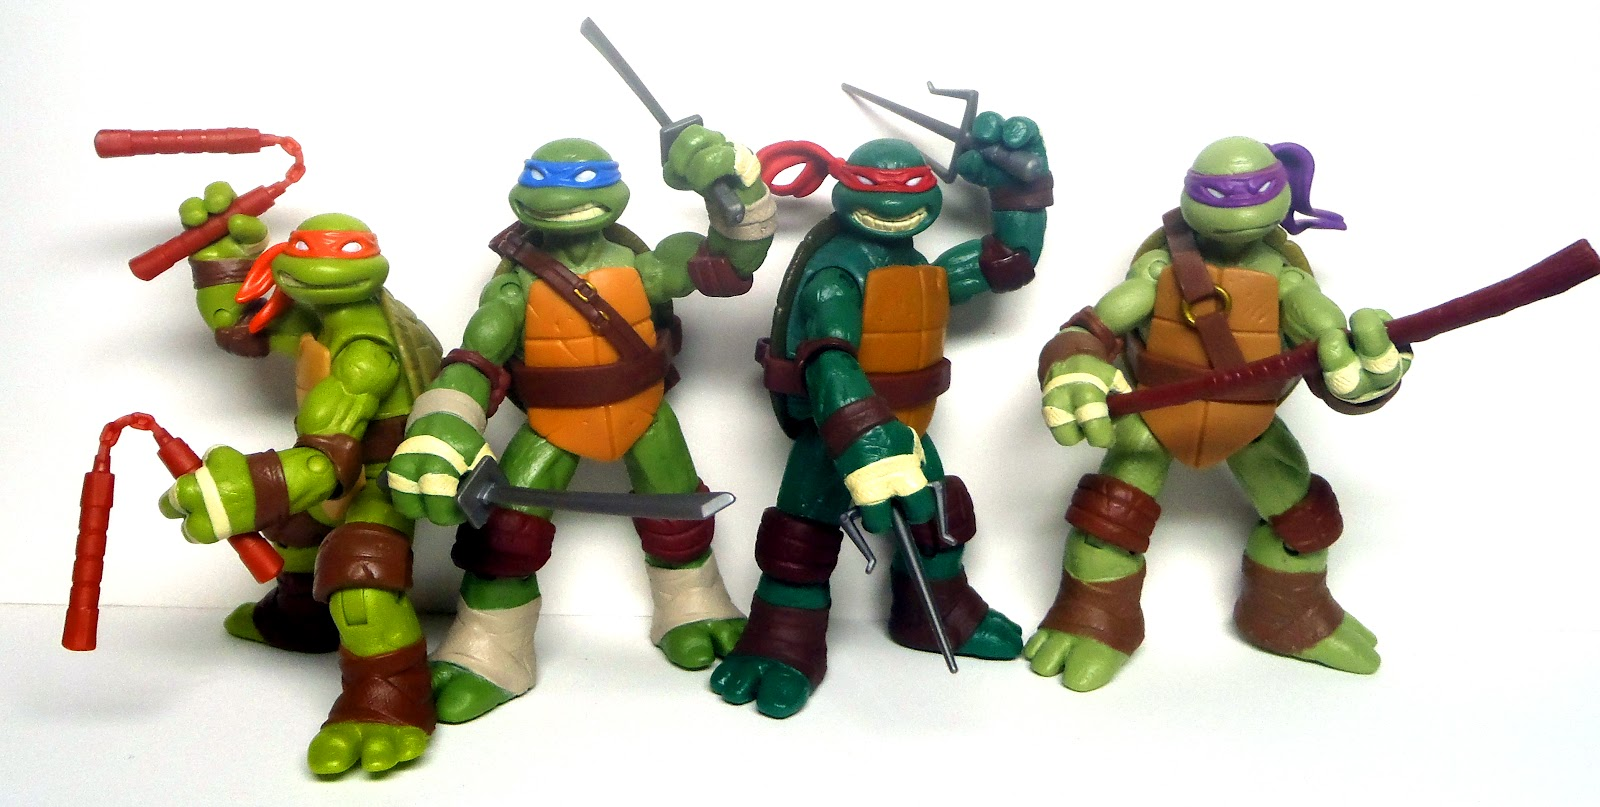 Teenage Mutant Ninja Turtles 2012 Neuralizer Toy : Taylor s sweet little art and nerd site teenage mutant